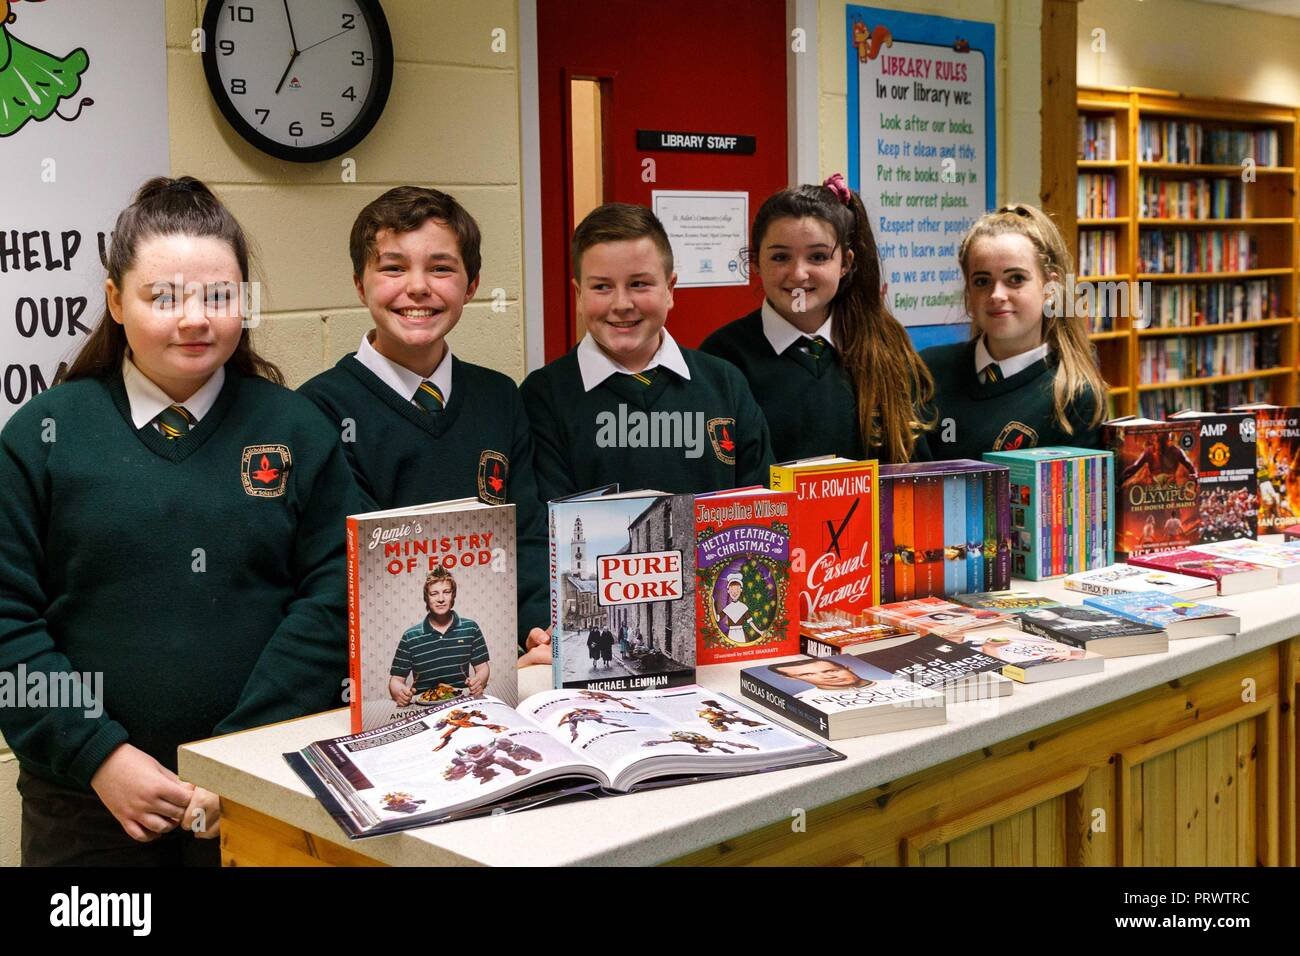 Cork, Ireland. 4th Oct, 2018.   St Aidans Open Night, Cork City. Pictured here (LtoR) are Rebecca Dunne, Ronan O Keeffe, Paul Wall, Lucy Moe and Ciara Greaney showing off some of the books the school libary has to offer. At 7pm this evening St Aidans Community College, Dublin Hill opened its door to give potential students and their families a glimpse into life in St Aidans. Parents and incoming students had a chance to see the various departments throughout the school which opened their doors to show what they had to offer the incoming students. Credit: Damian Coleman/ Alamy Live News. - Stock Image